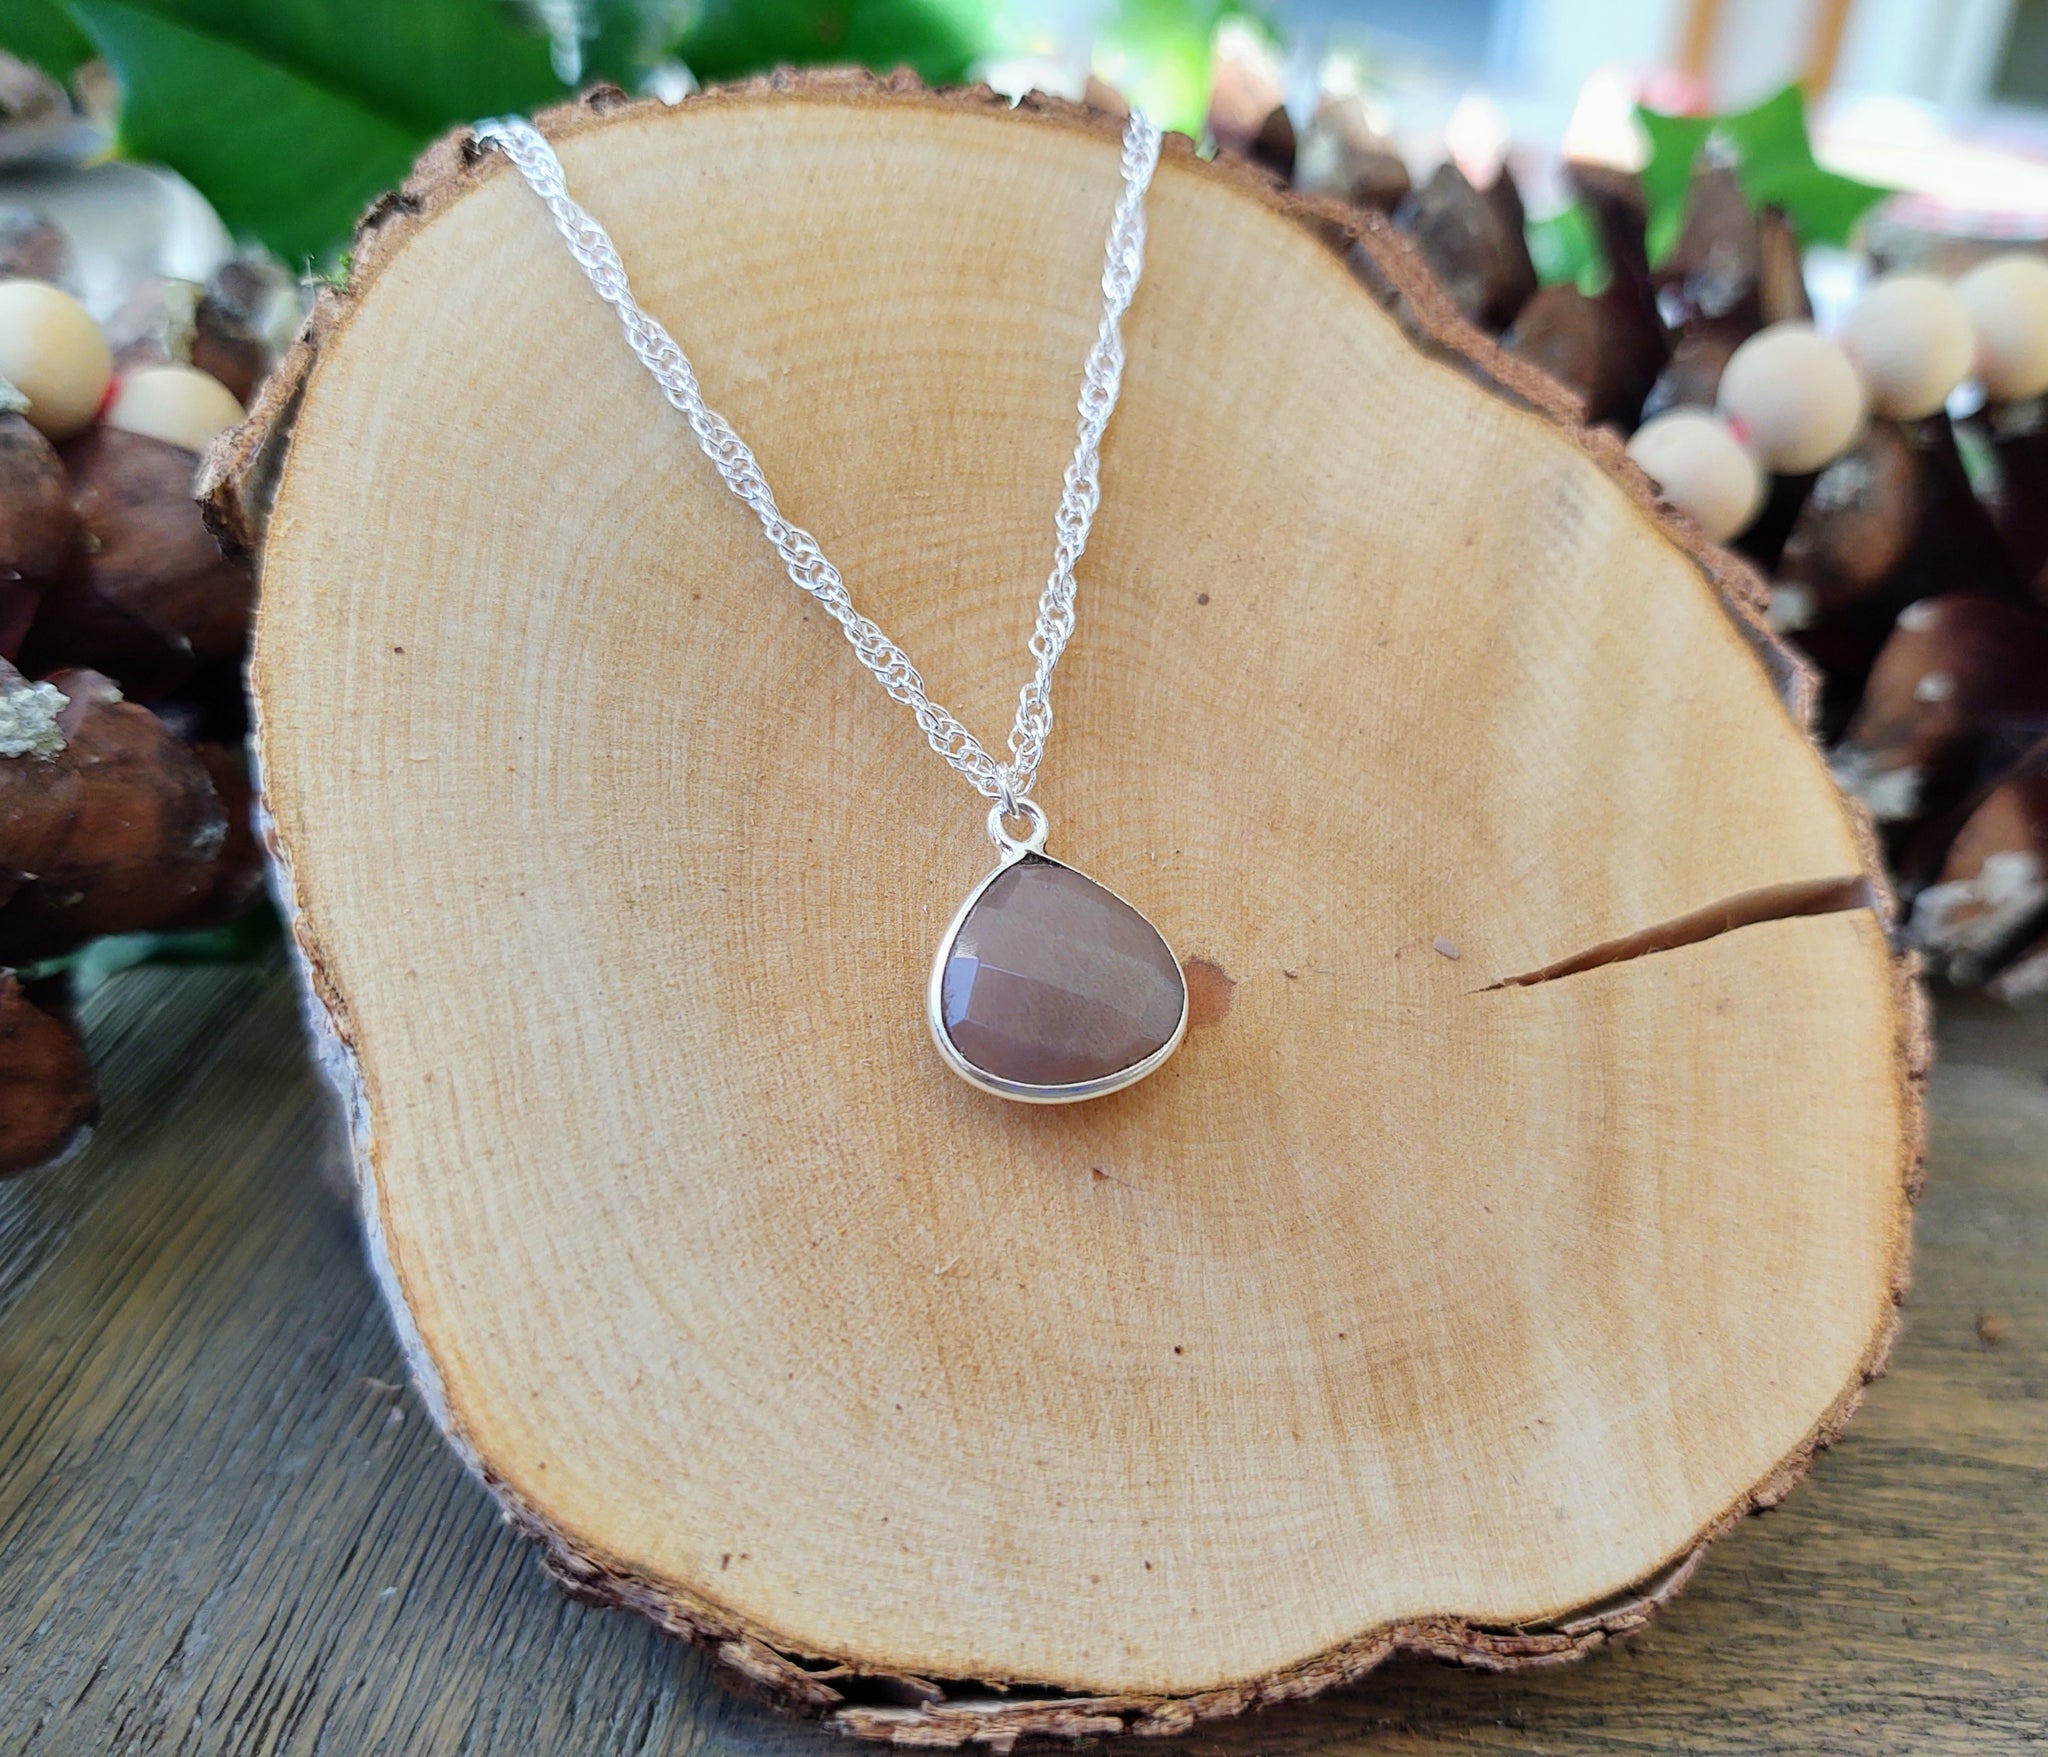 To Sparkle: Mystic Swiss Chocolate Moonstone